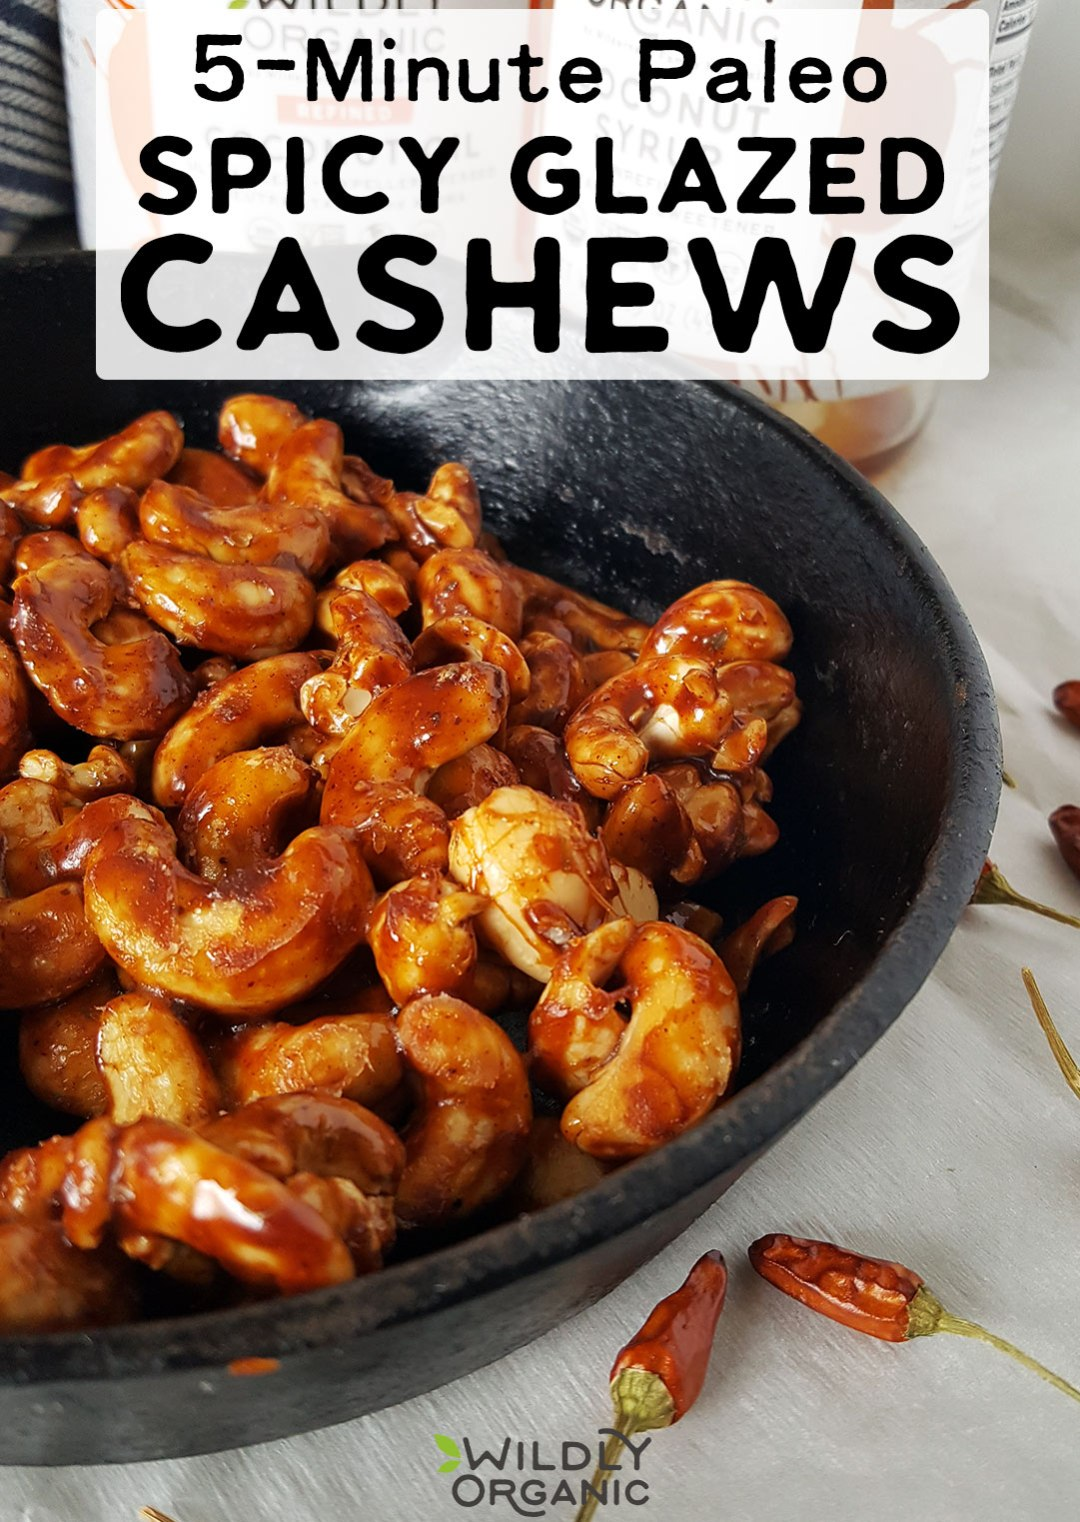 Warning: these Paleo Spicy Glazed Cashews are addictive! Deep, golden brown sweetness, a dash of saltiness, and a kick of heat combine to make a healthy Paleo and vegan snack in just 5 minutes!